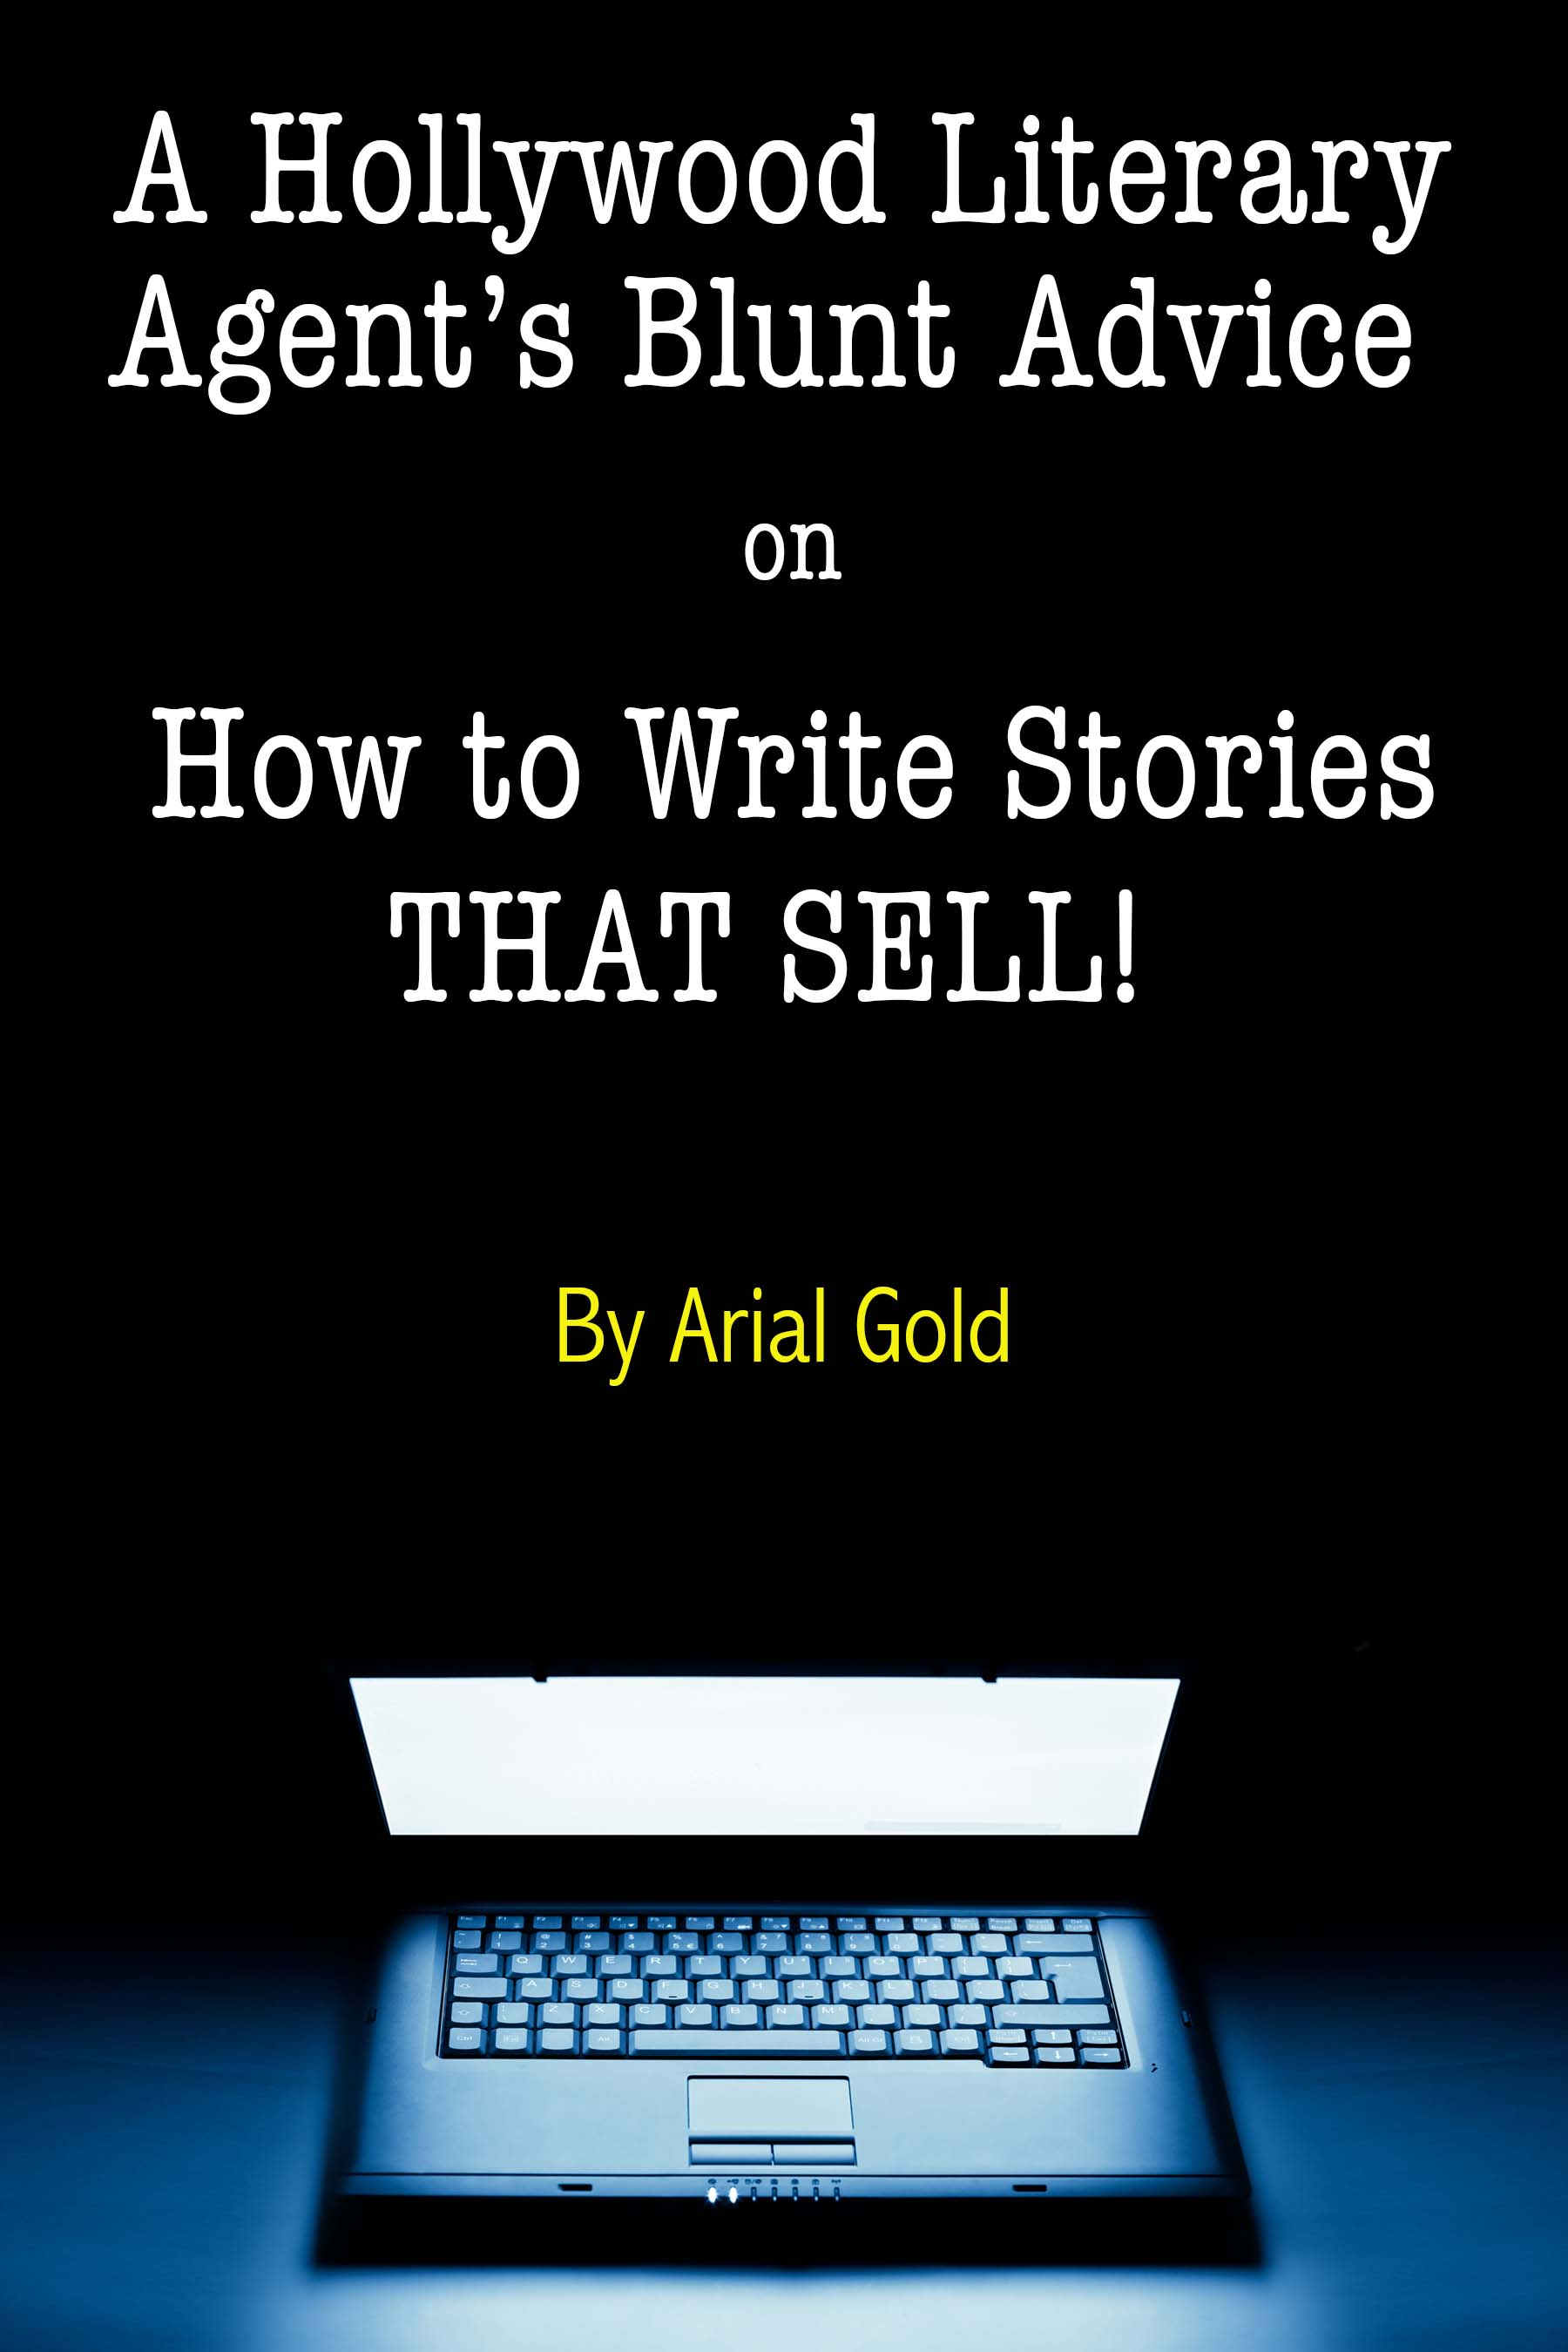 A Hollywood Literary Agent's Blunt Guide on How to Write Stories That  Sell!, an Ebook by Arial Gold